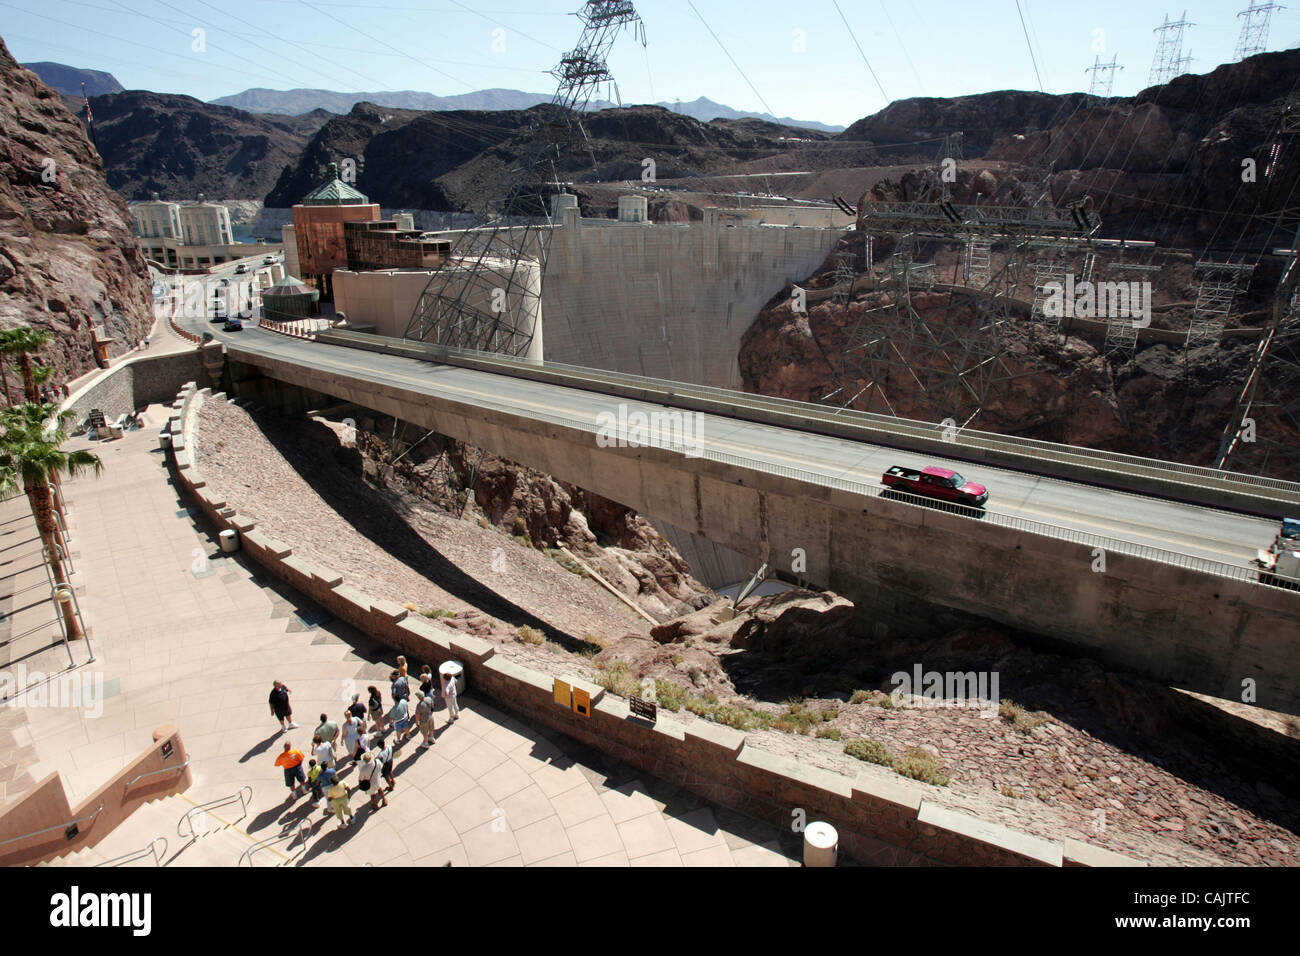 Hoover Dam, also known as Boulder Dam, is a concrete gravity